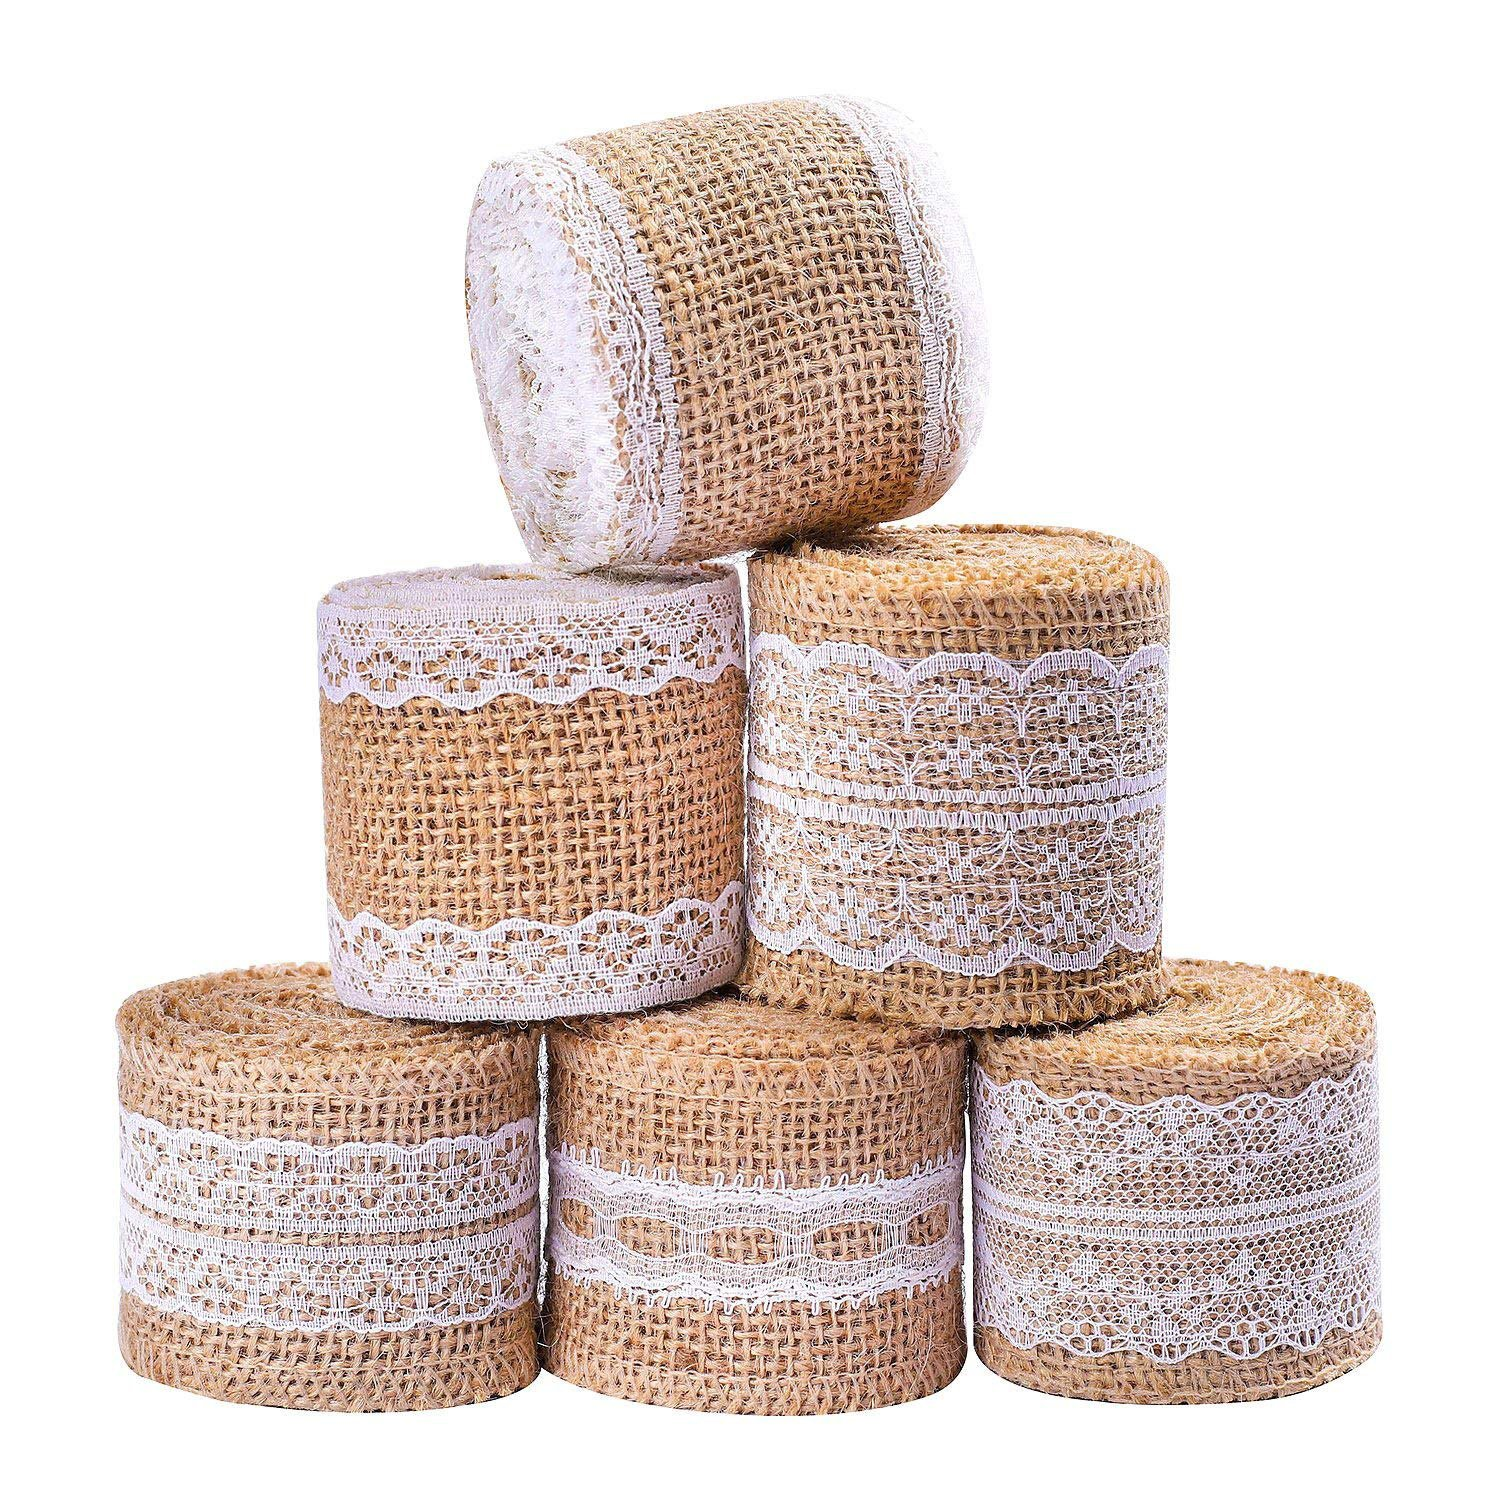 Whaline 13 Yards/ 473 inches Burlap Ribbon Roll with White Lace Craft Ribbon Roll for DIY, Home Decor and Gift Wrap, 6 Rolls